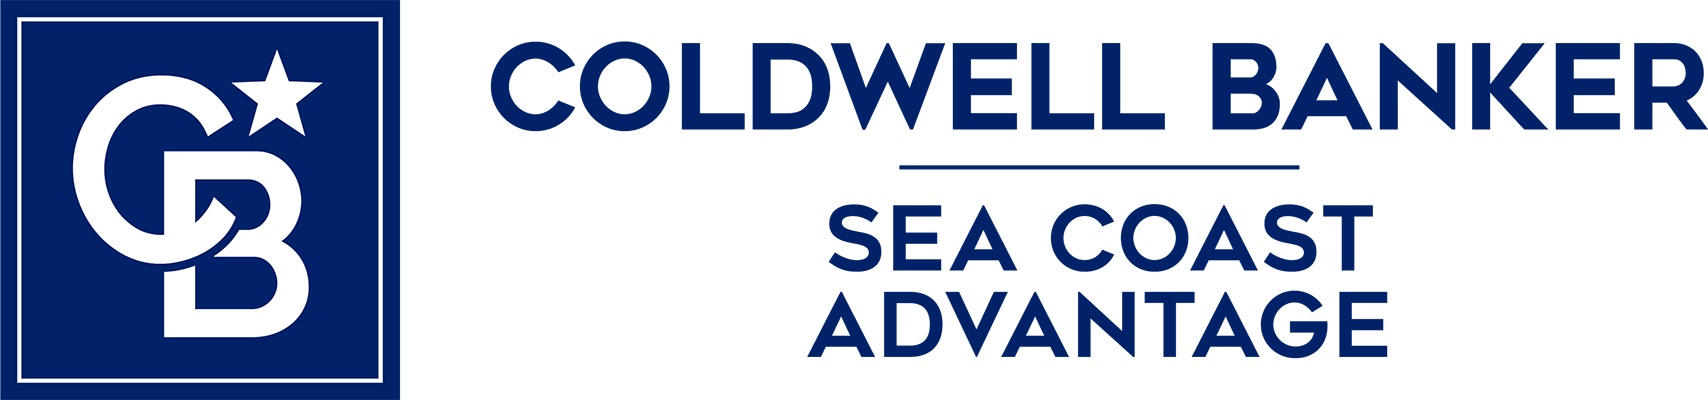 Jason Robbins - Coldwell Banker Sea Coast Advantage Realty